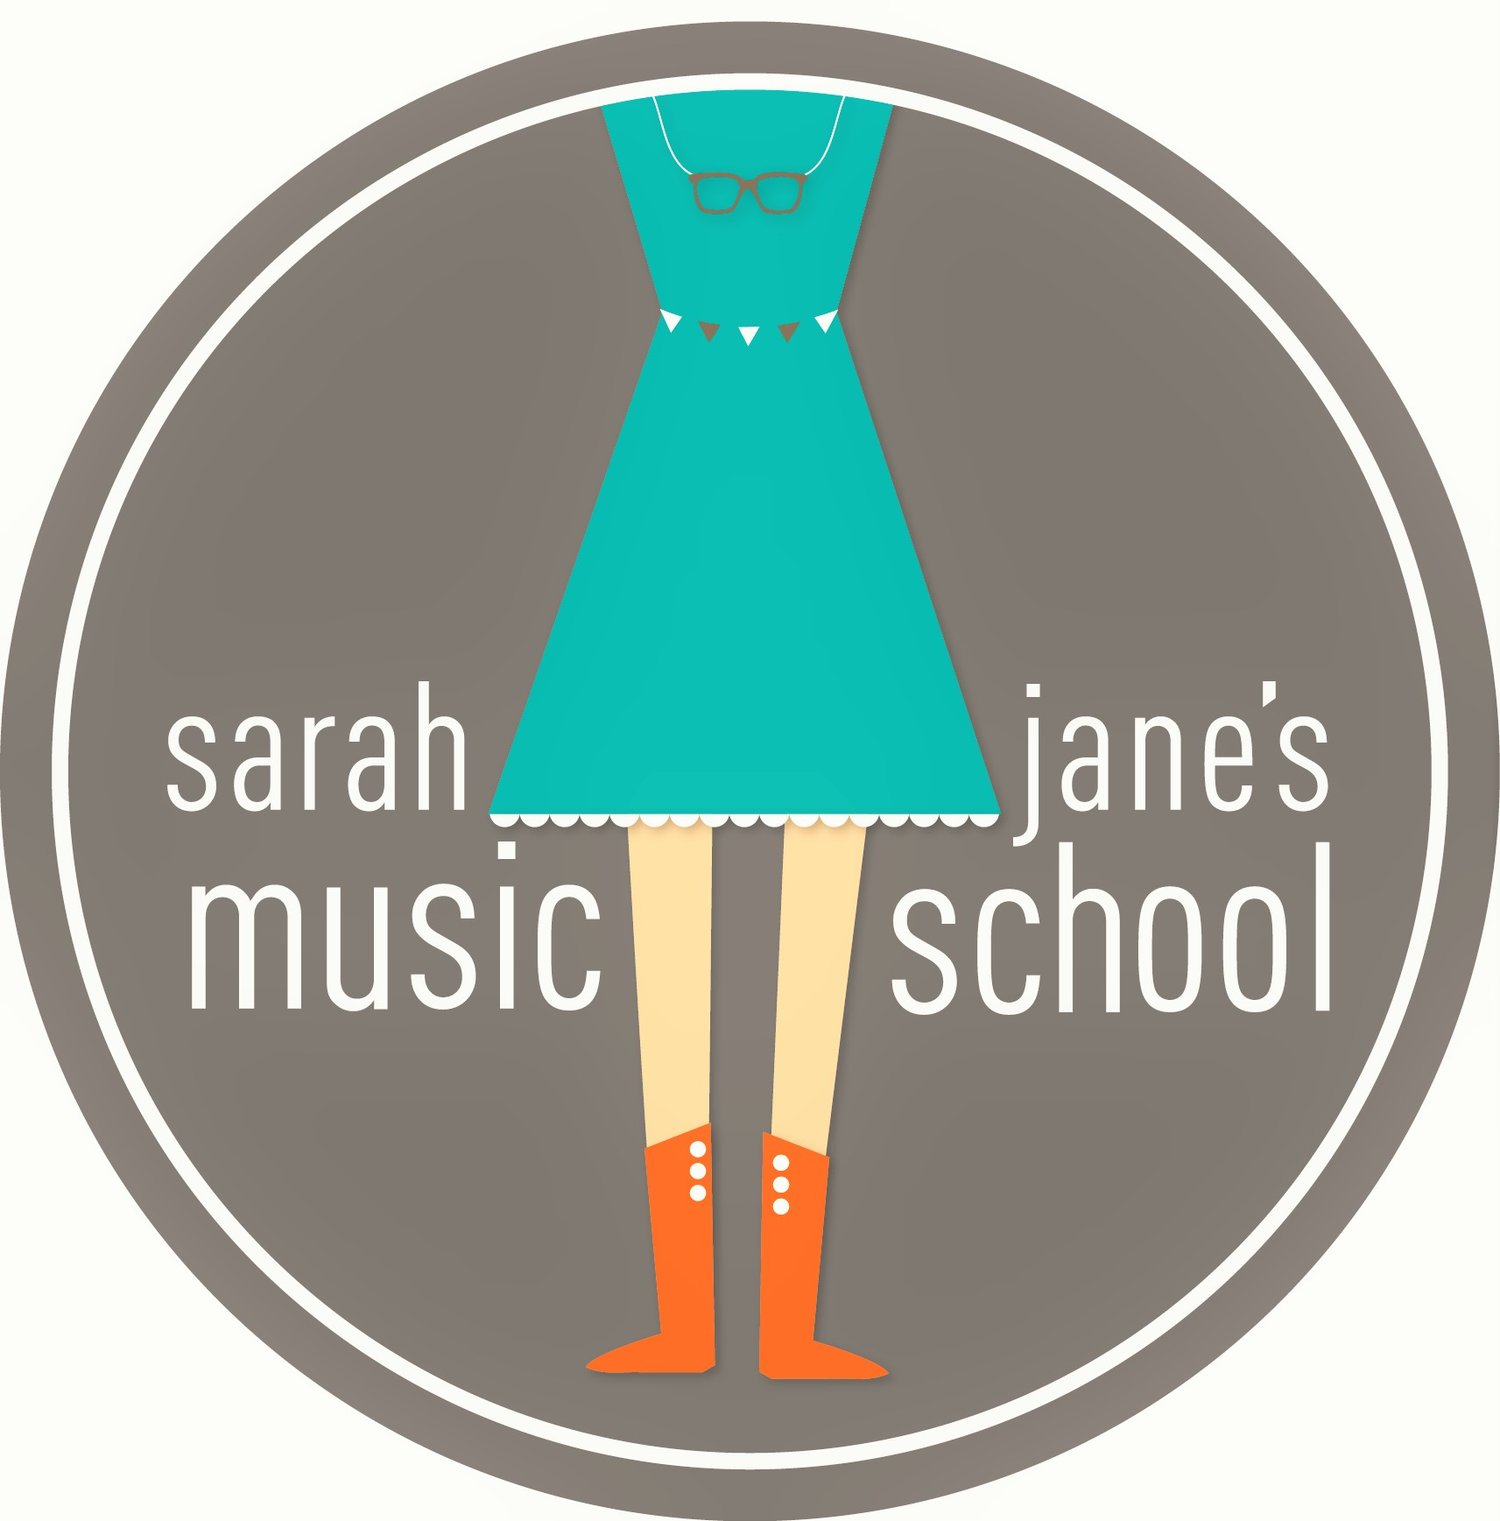 Sarah Jane's Music School